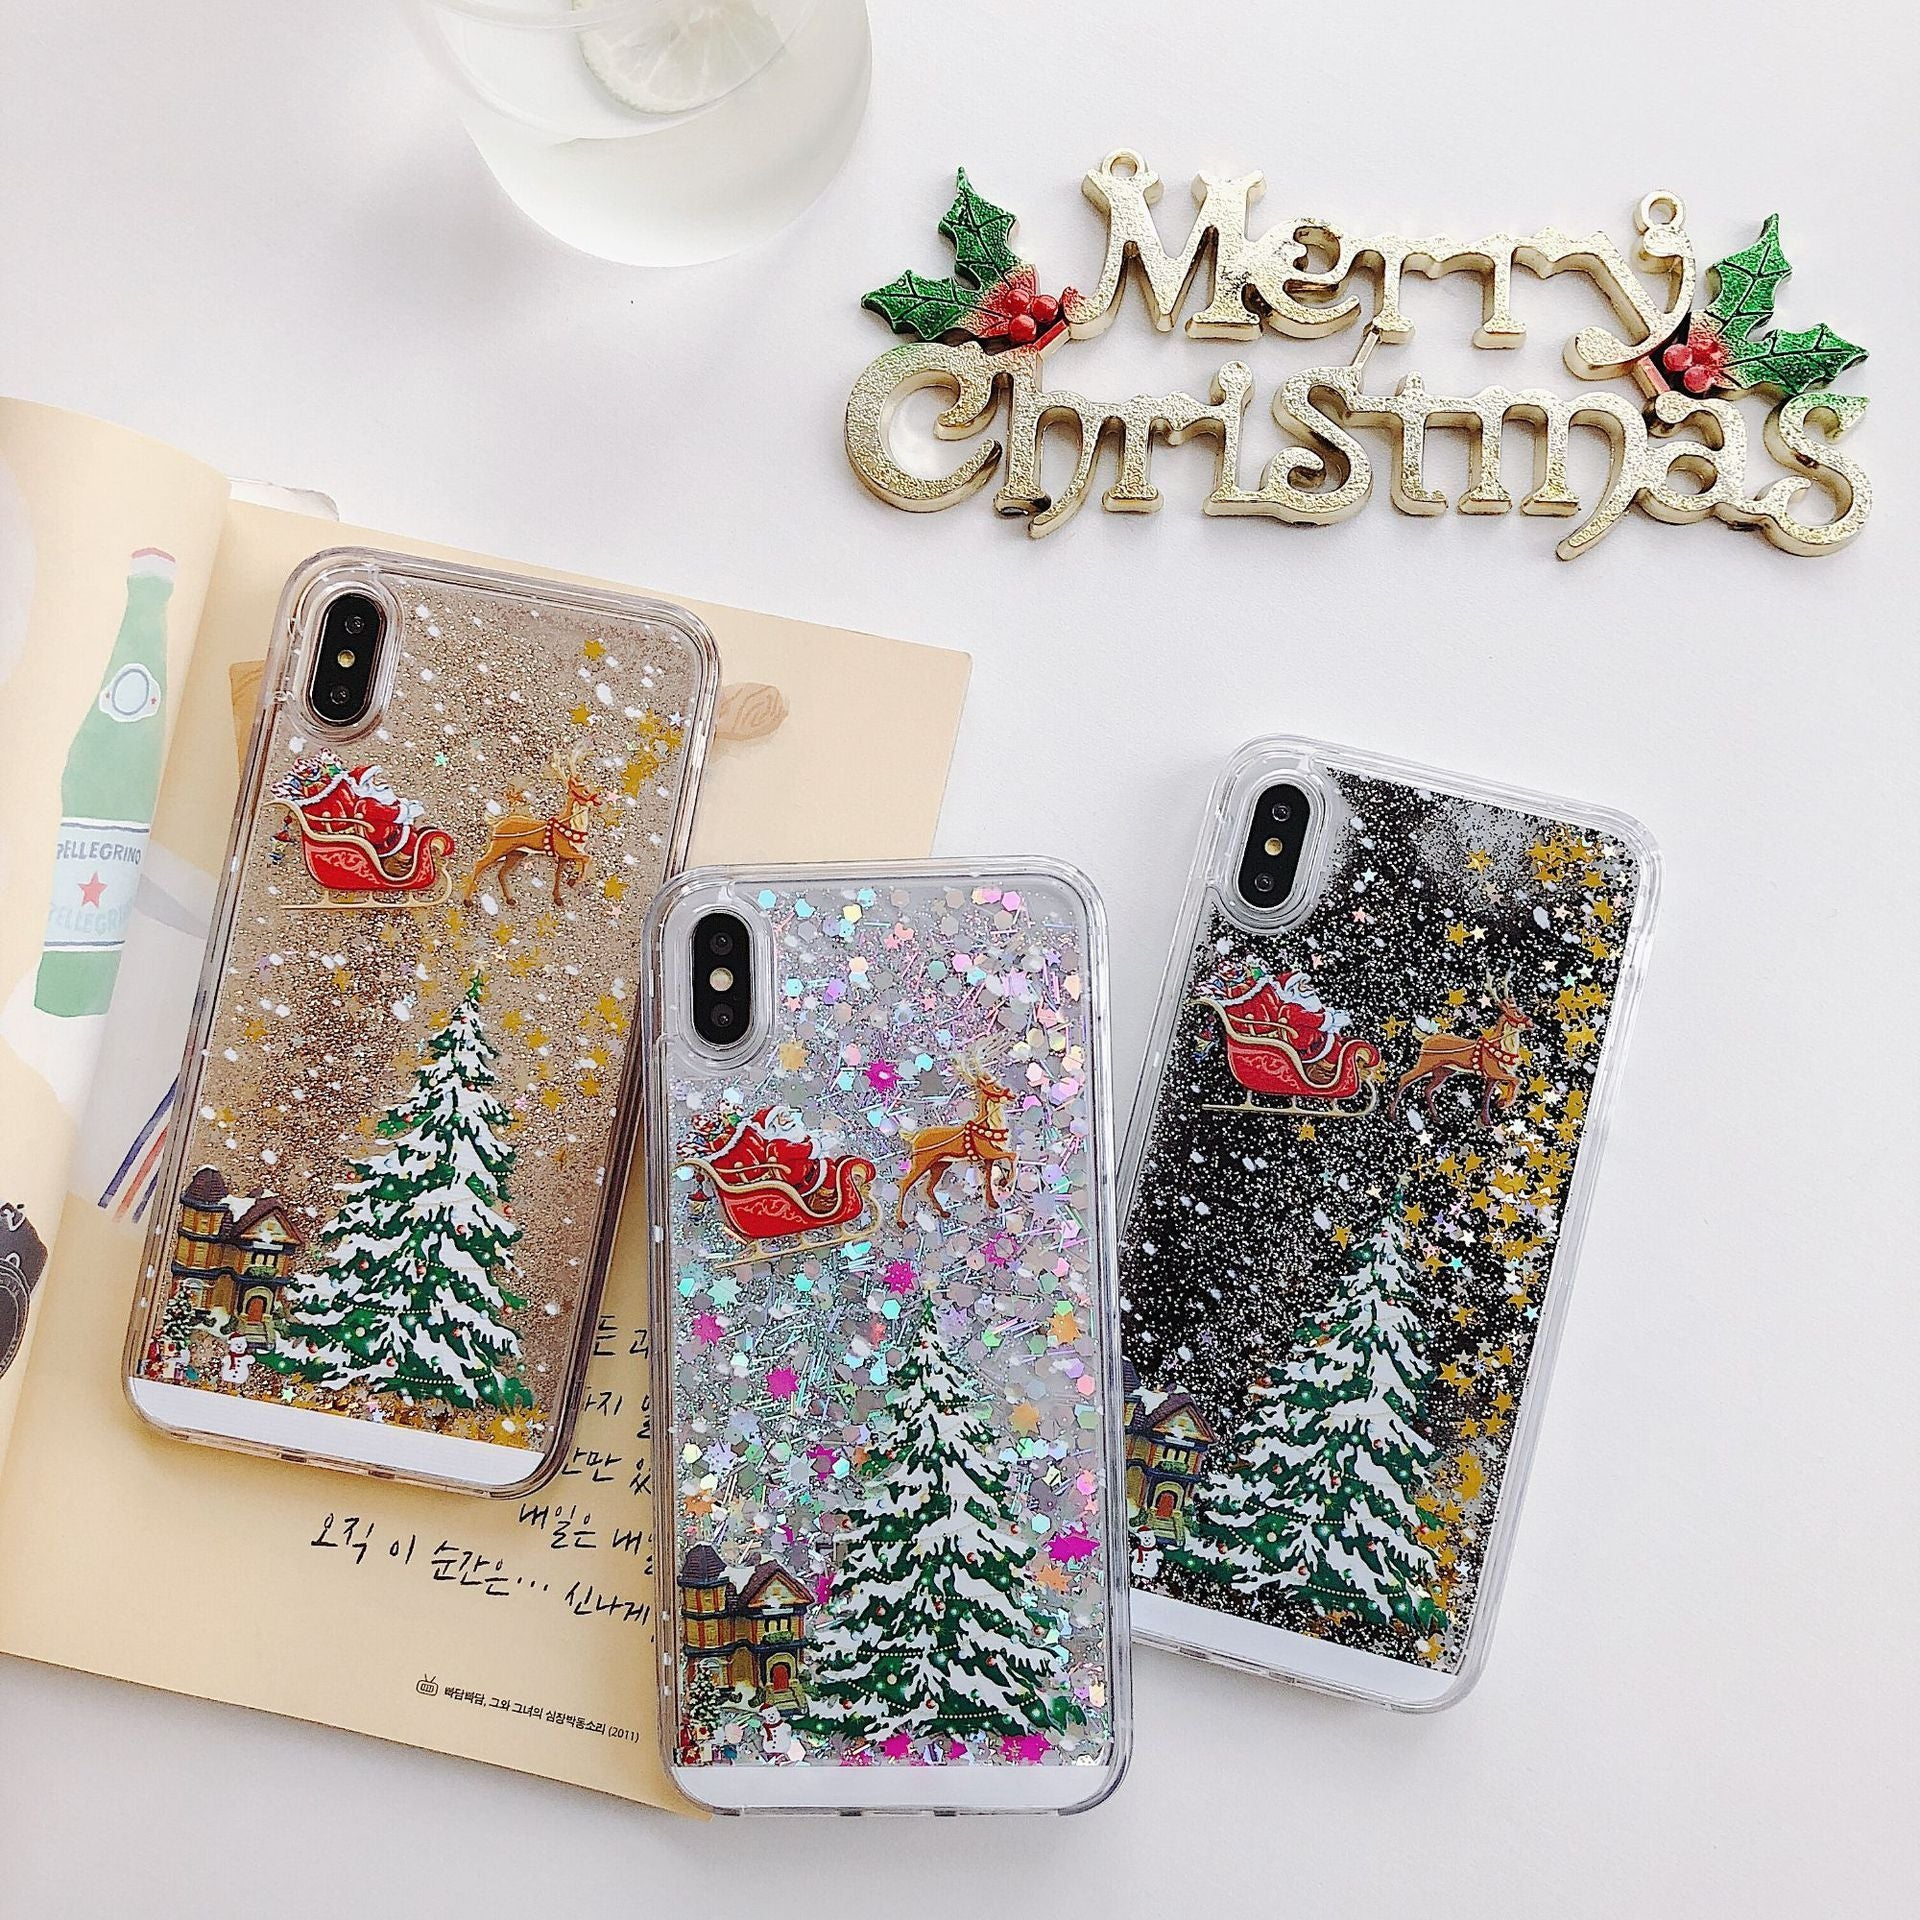 【Christmas sale-BUY 2 GET Extra 10% DISCOUNT】Flash powder mobile phone case - ChoiceBird